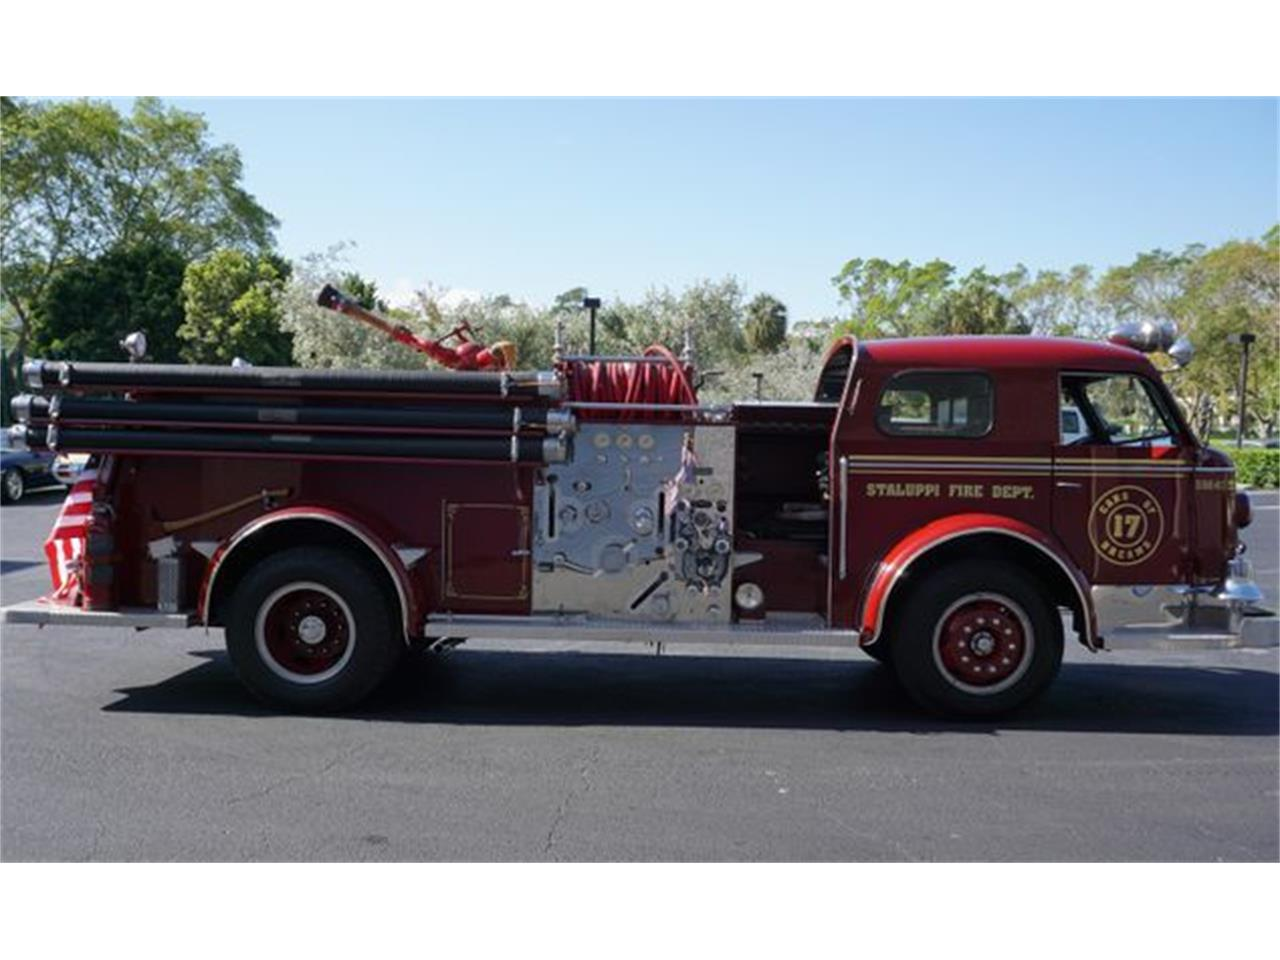 Large Picture of 1953 American LaFrance Fire Engine Offered by European Autobody, Inc. - O4GG